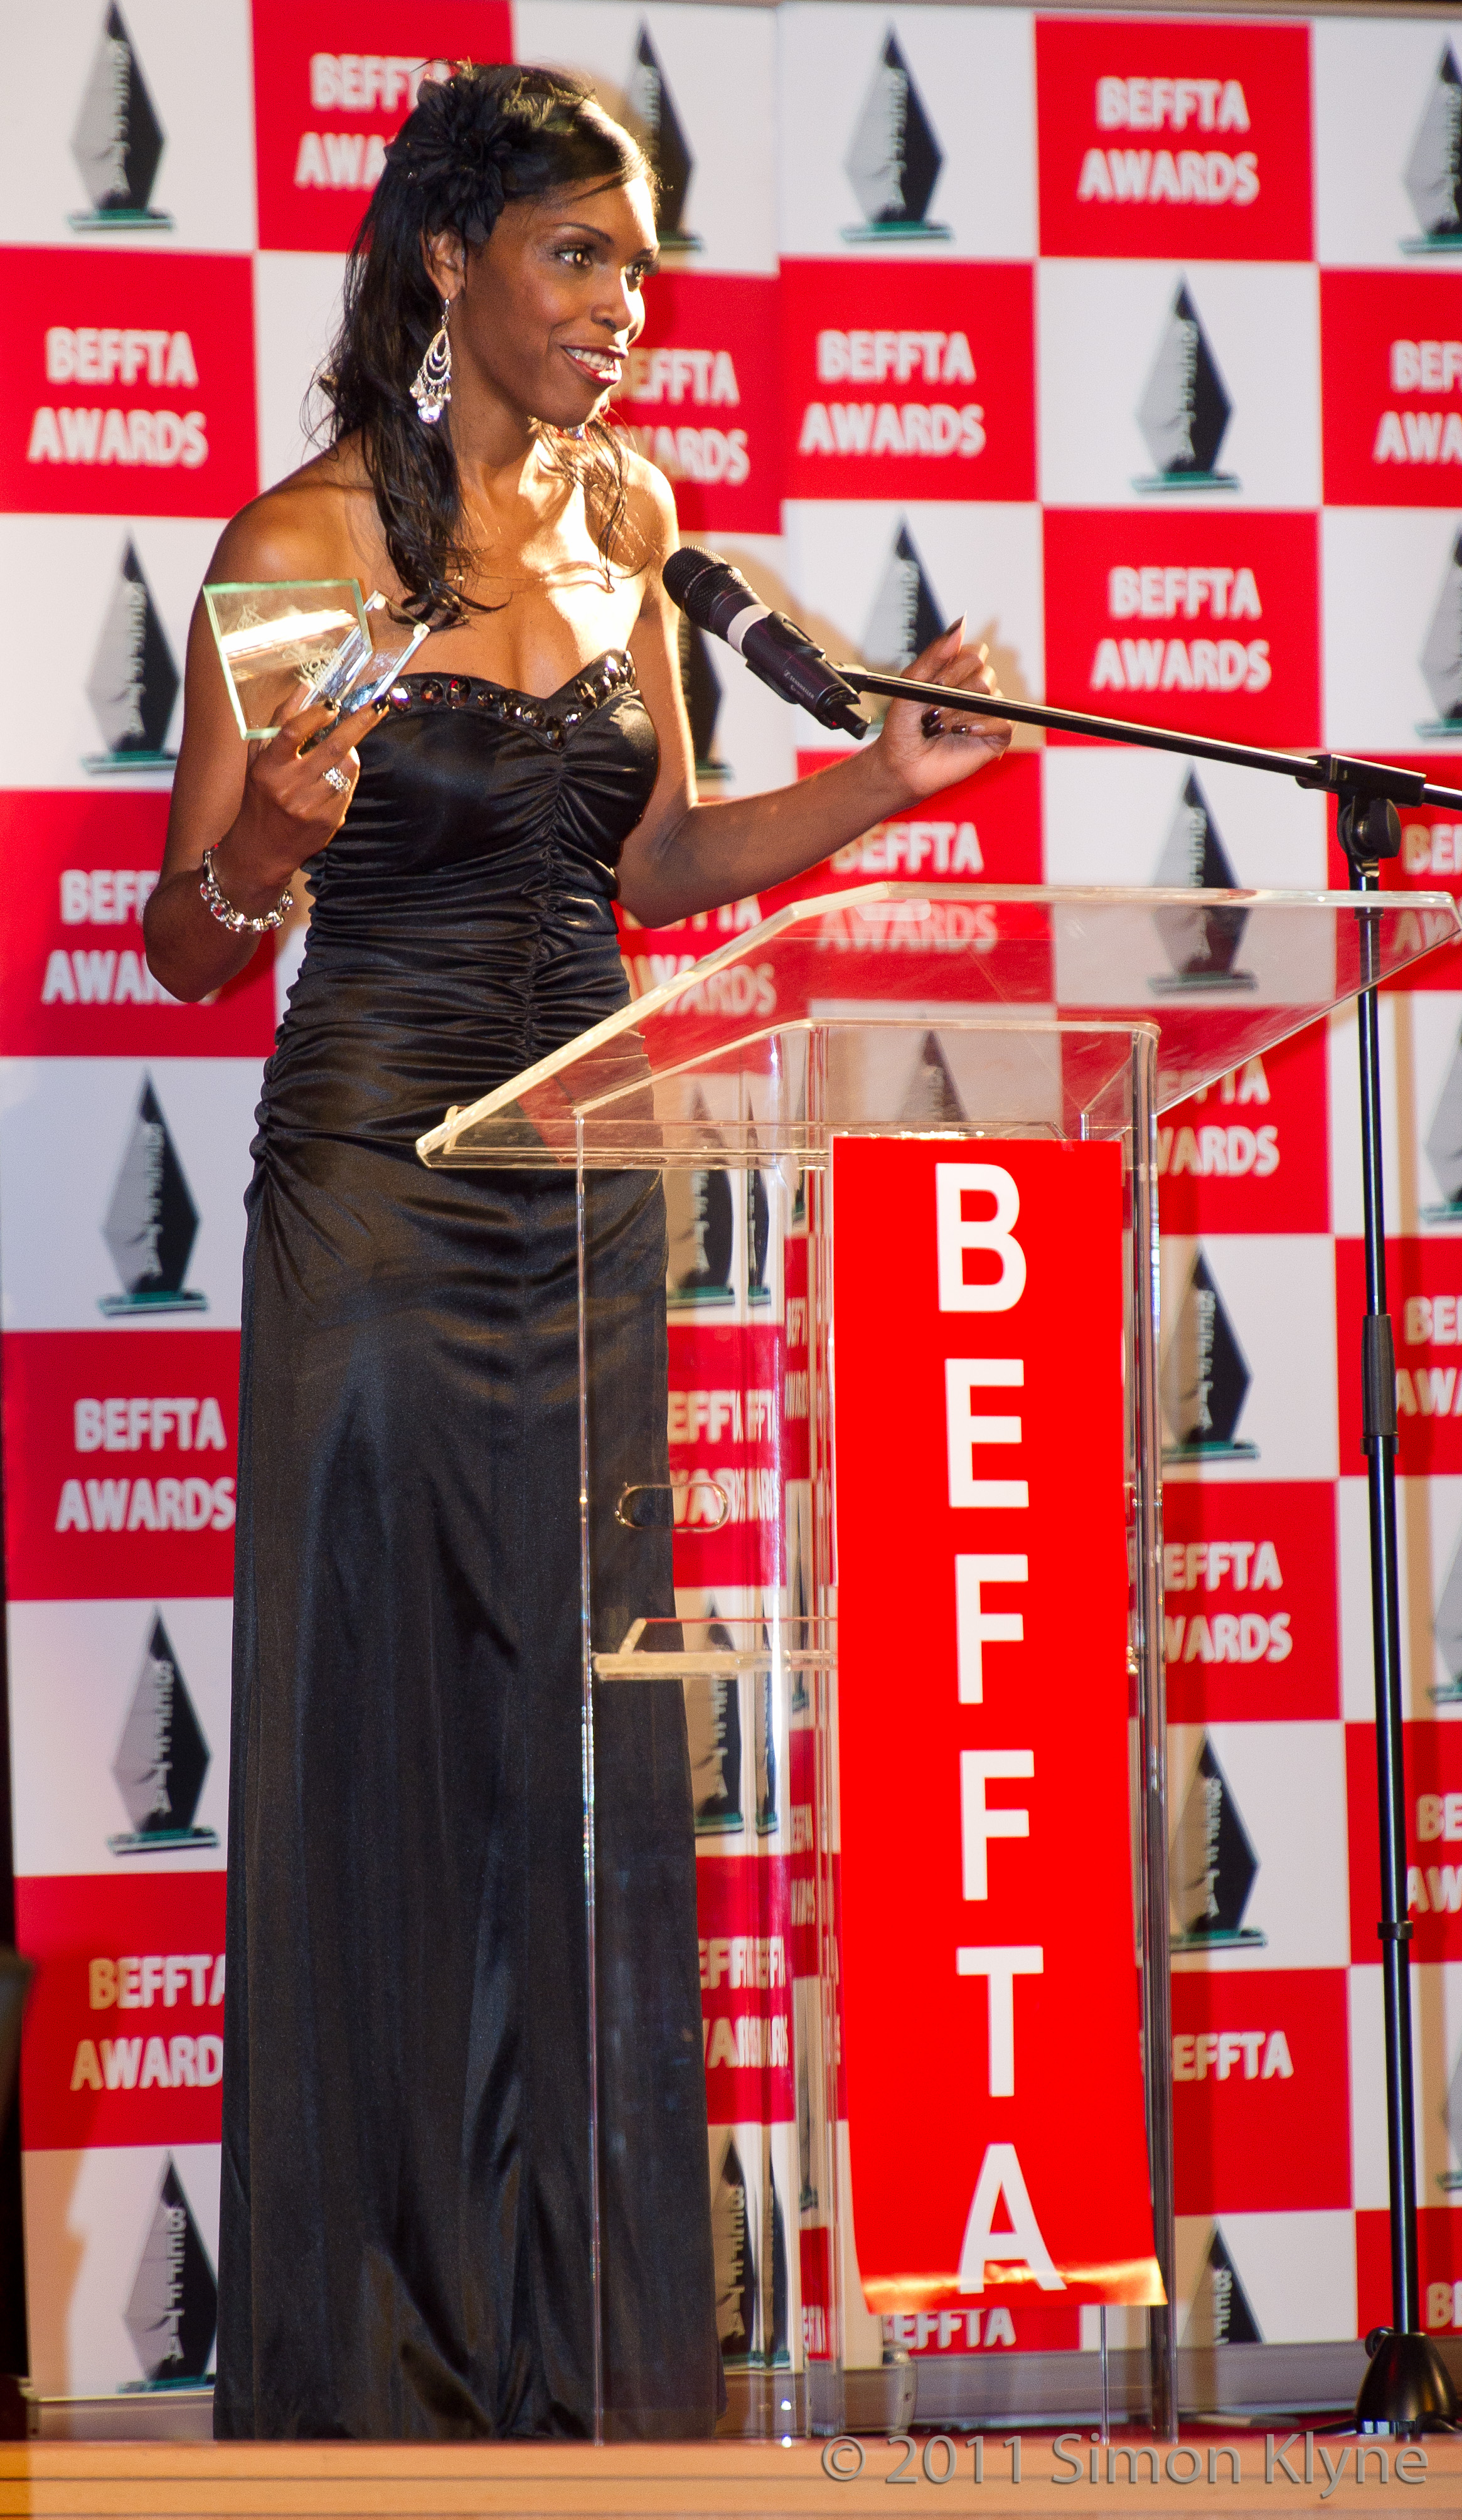 Fashion finest picked up BEFFTA BEST EVENT PROMOTER 2011